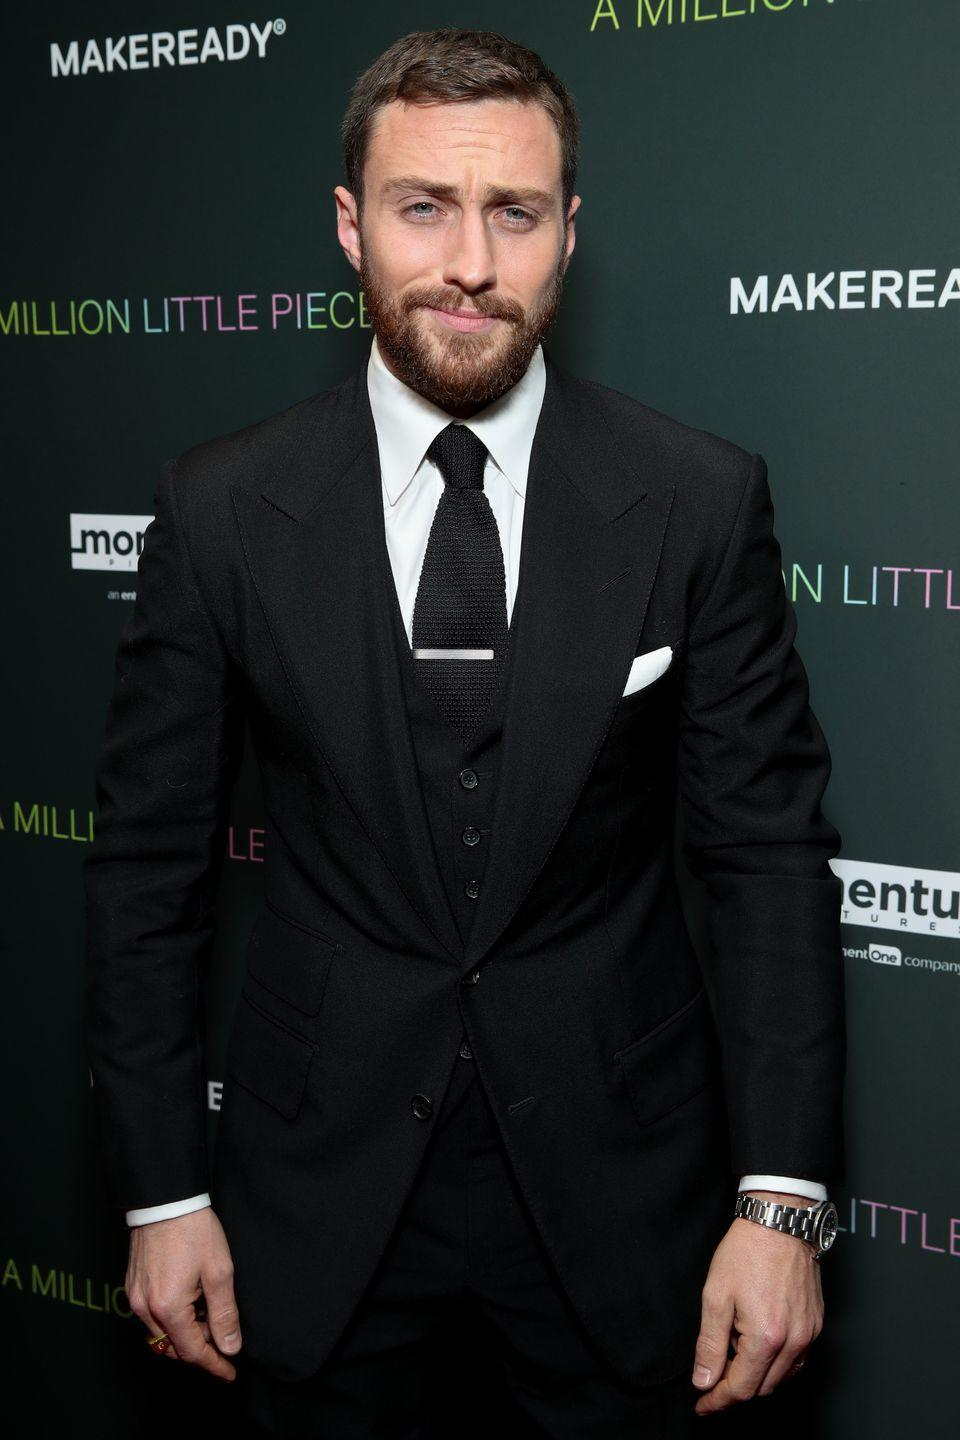 <p>Taylor-Johnson is still acting! Since he played Robbie, he's been in big blockbusters like <em>Kick-Ass</em>, <em>Tenet</em>, and <em>Nowhere Boy</em>. He even won a Golden Globe in 2017 for his role in <em>Nocturnal Animals</em>. </p>